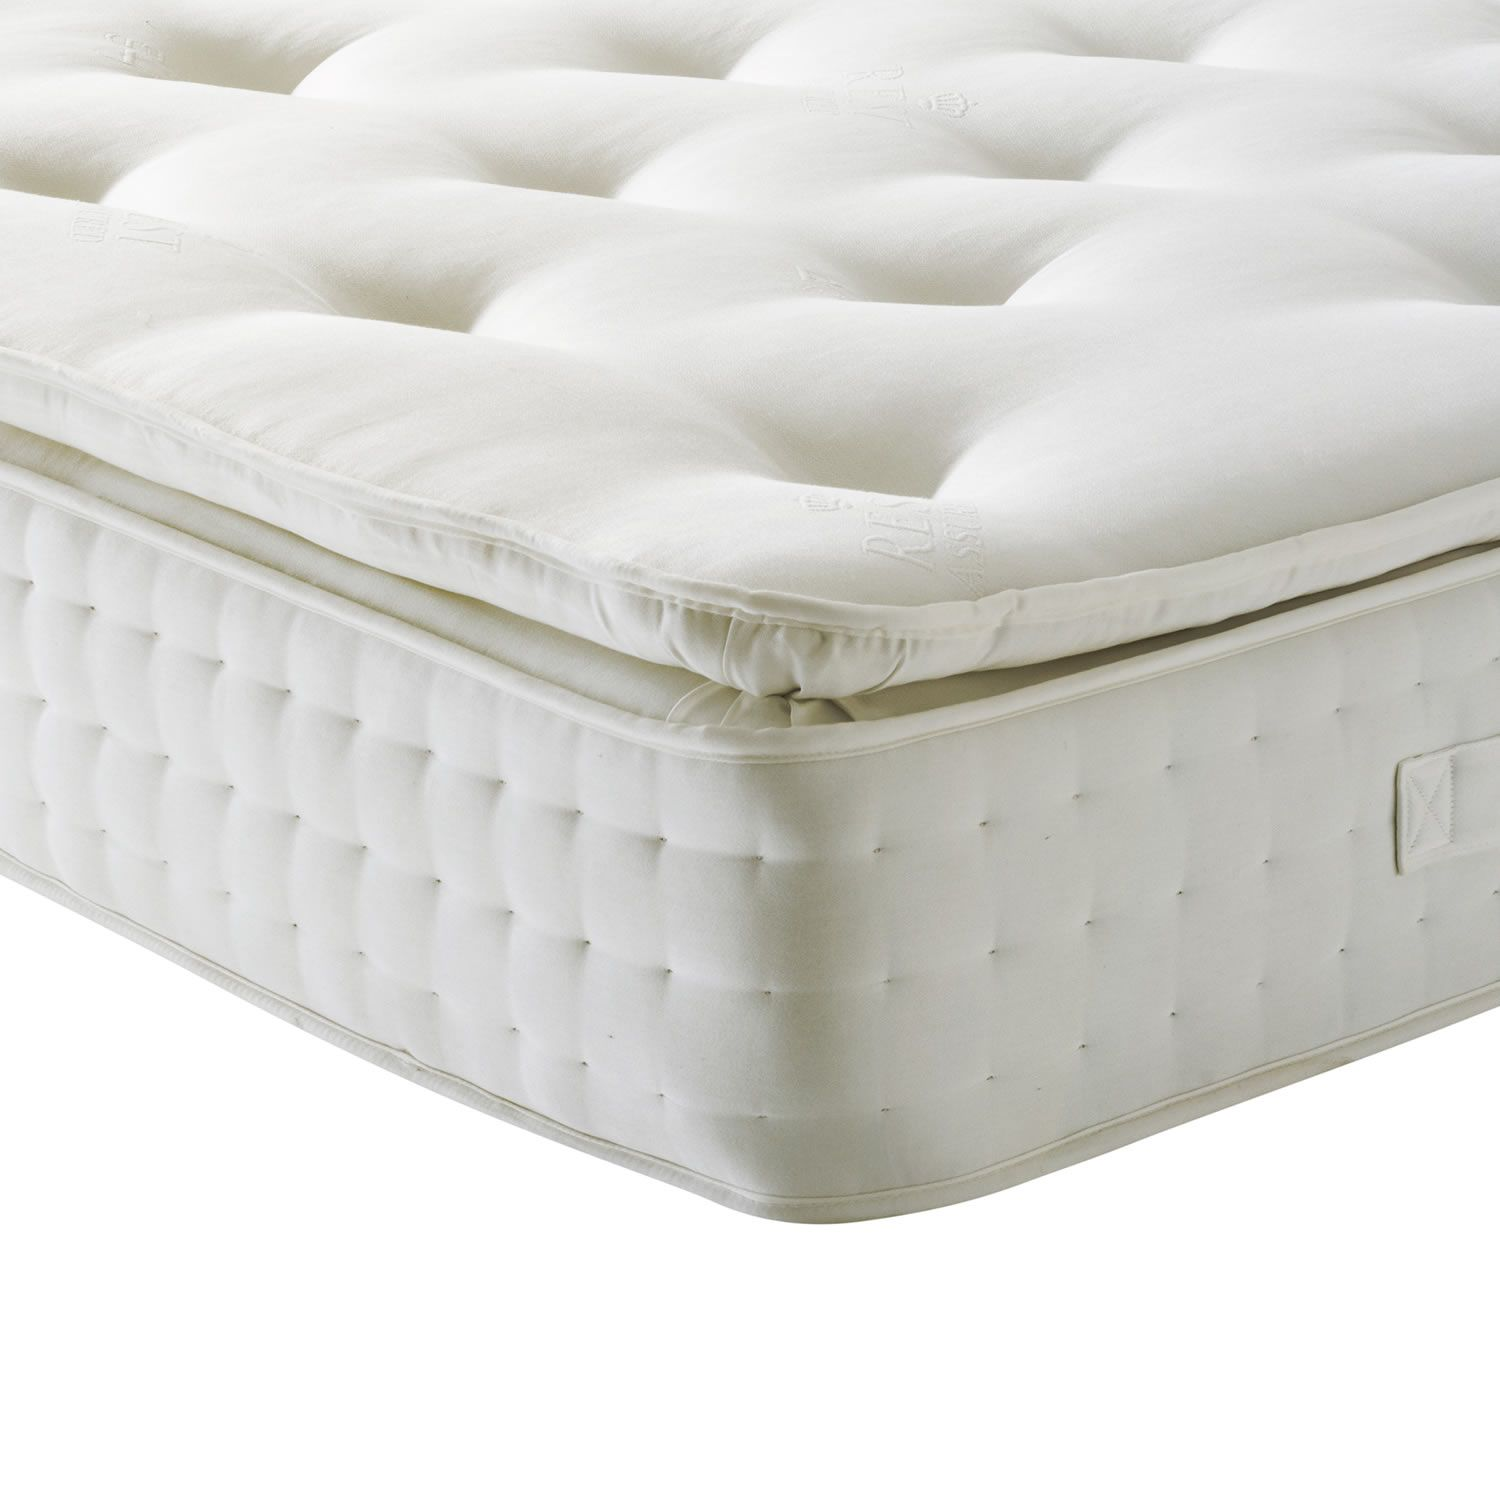 Rest Ured Knowlton 2000 Latex Pocket Mattress Free Delivery Next Day Select